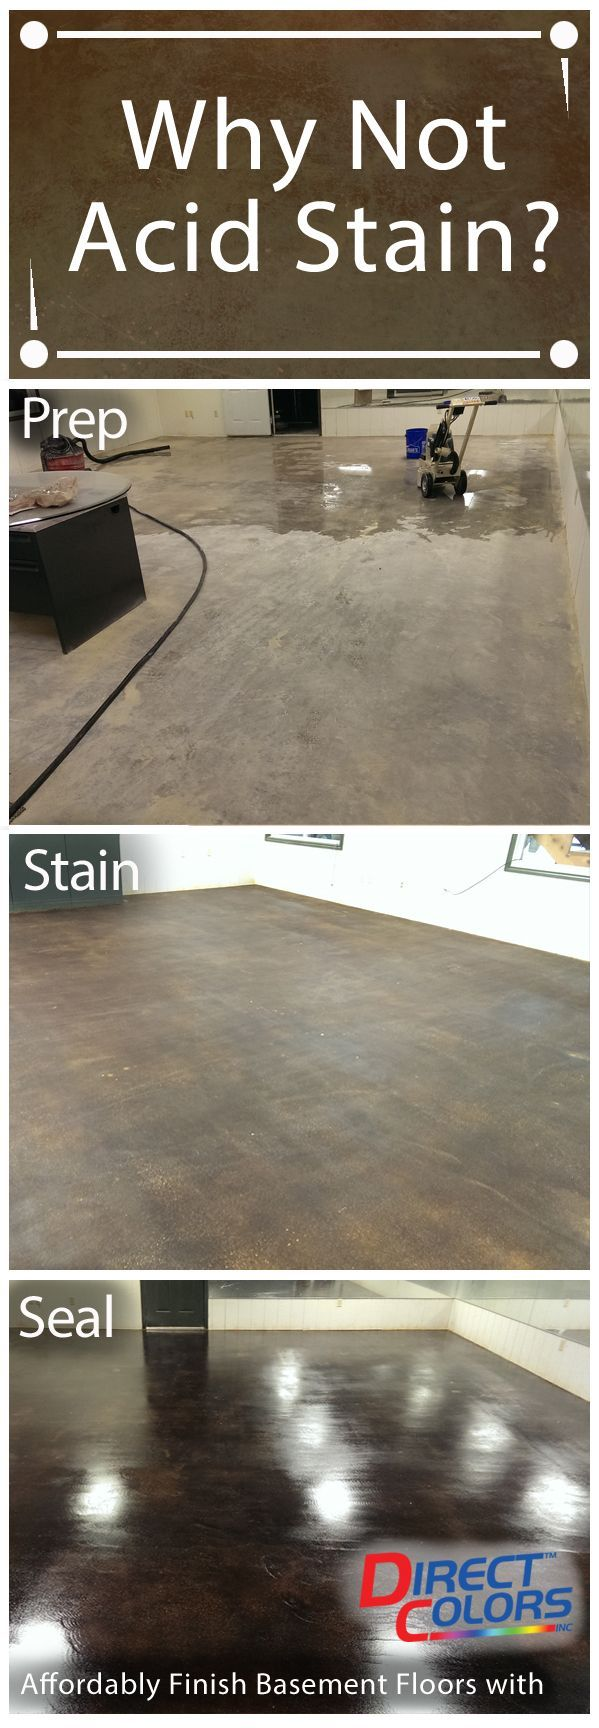 Acid Staining Basement Floors is both an affordable and unique option for homeowners. Do it yourself or hire a contractor. You'll be glad you did for the easy maintenance, cleaning and just spectacular look! Direct Colors has the how-to info, technical support and quality products you need to get started today!